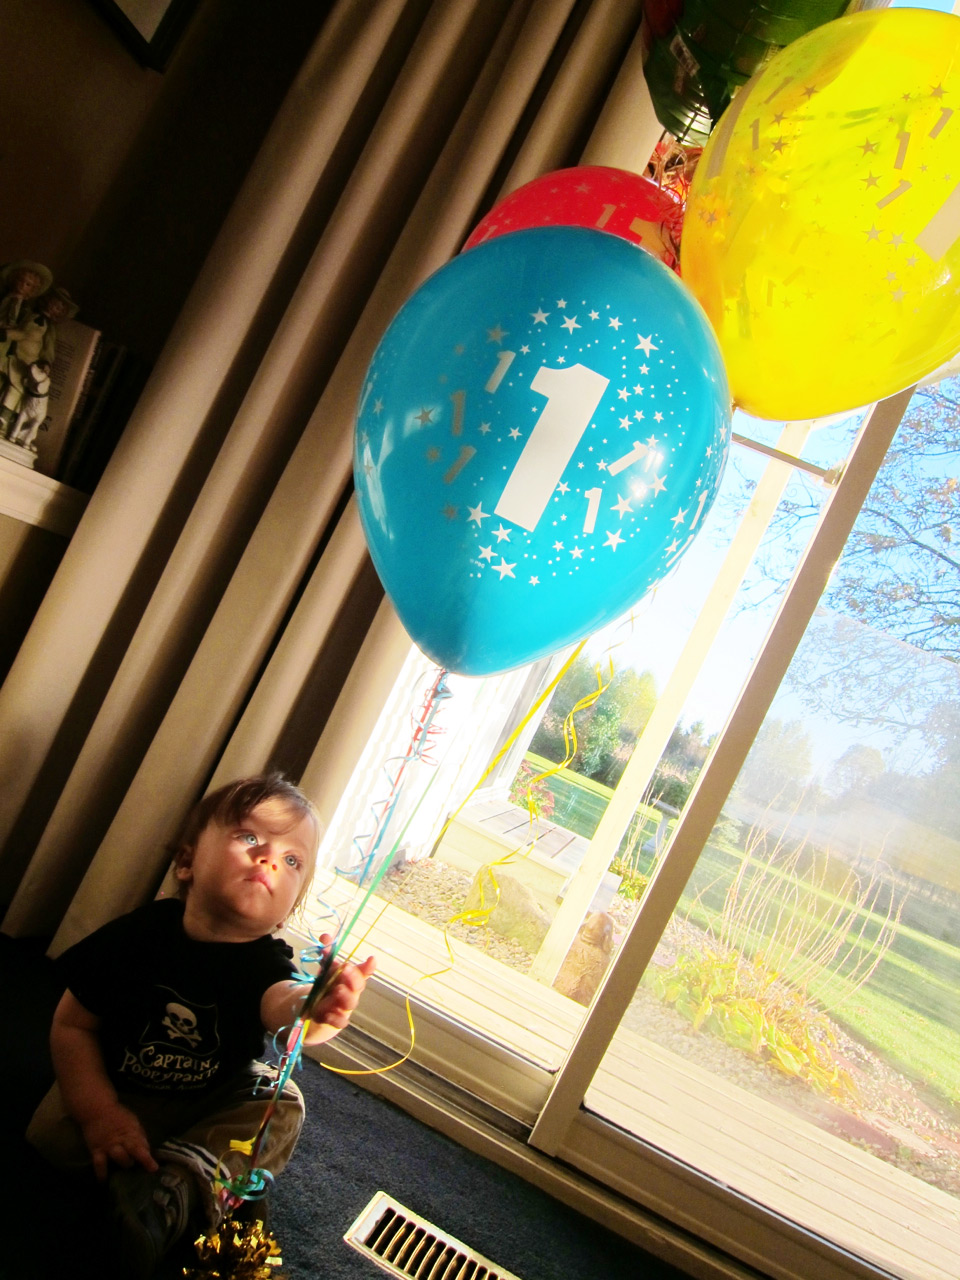 Boo playing with his balloons